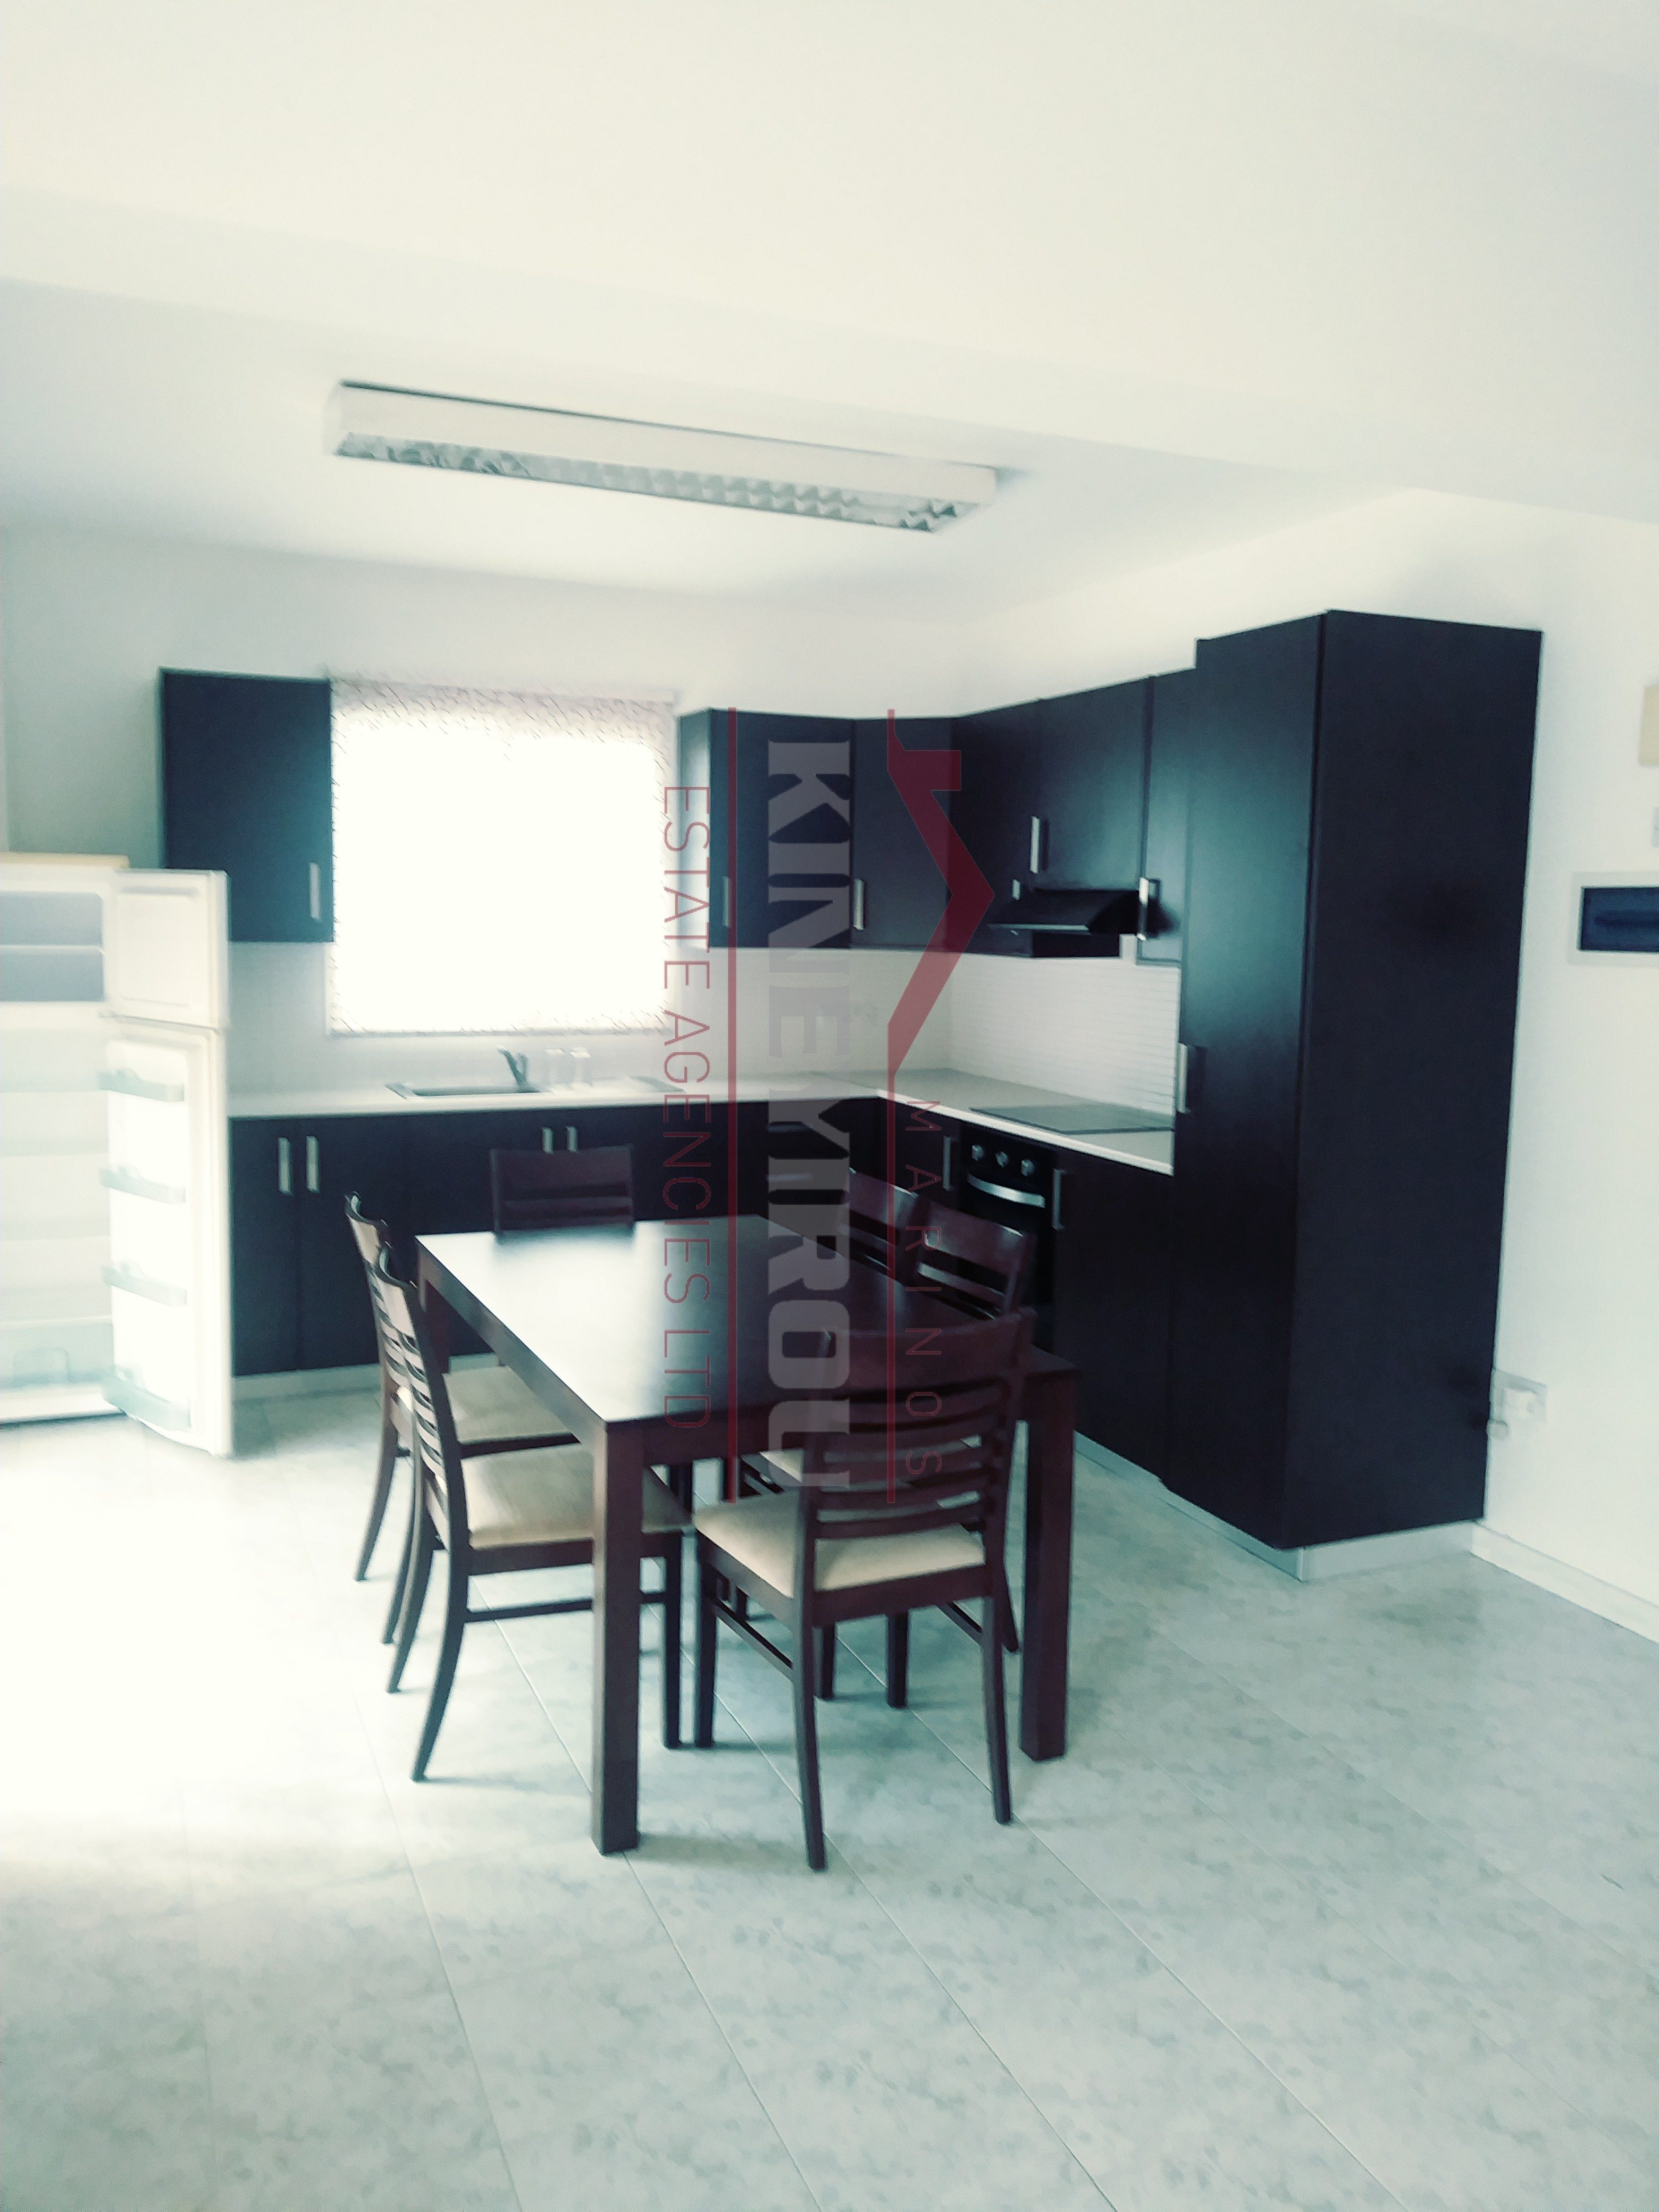 2 bedroom flat for rent  in Town center – Larnaca